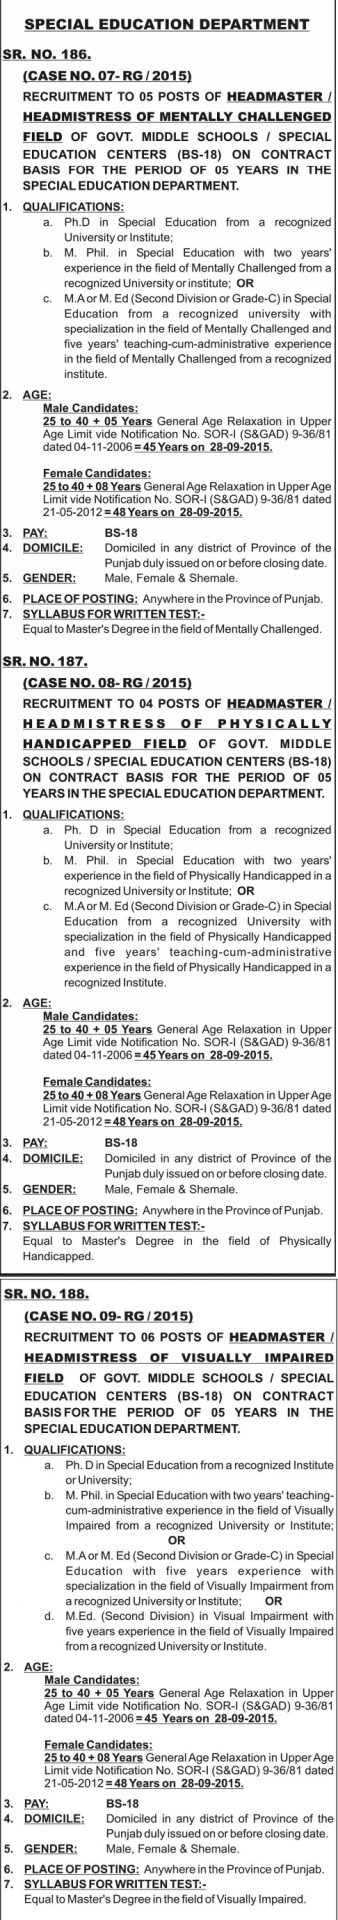 Ppsc Special Education Jobs 2015 Headmaster Headmistress Apply Online Form